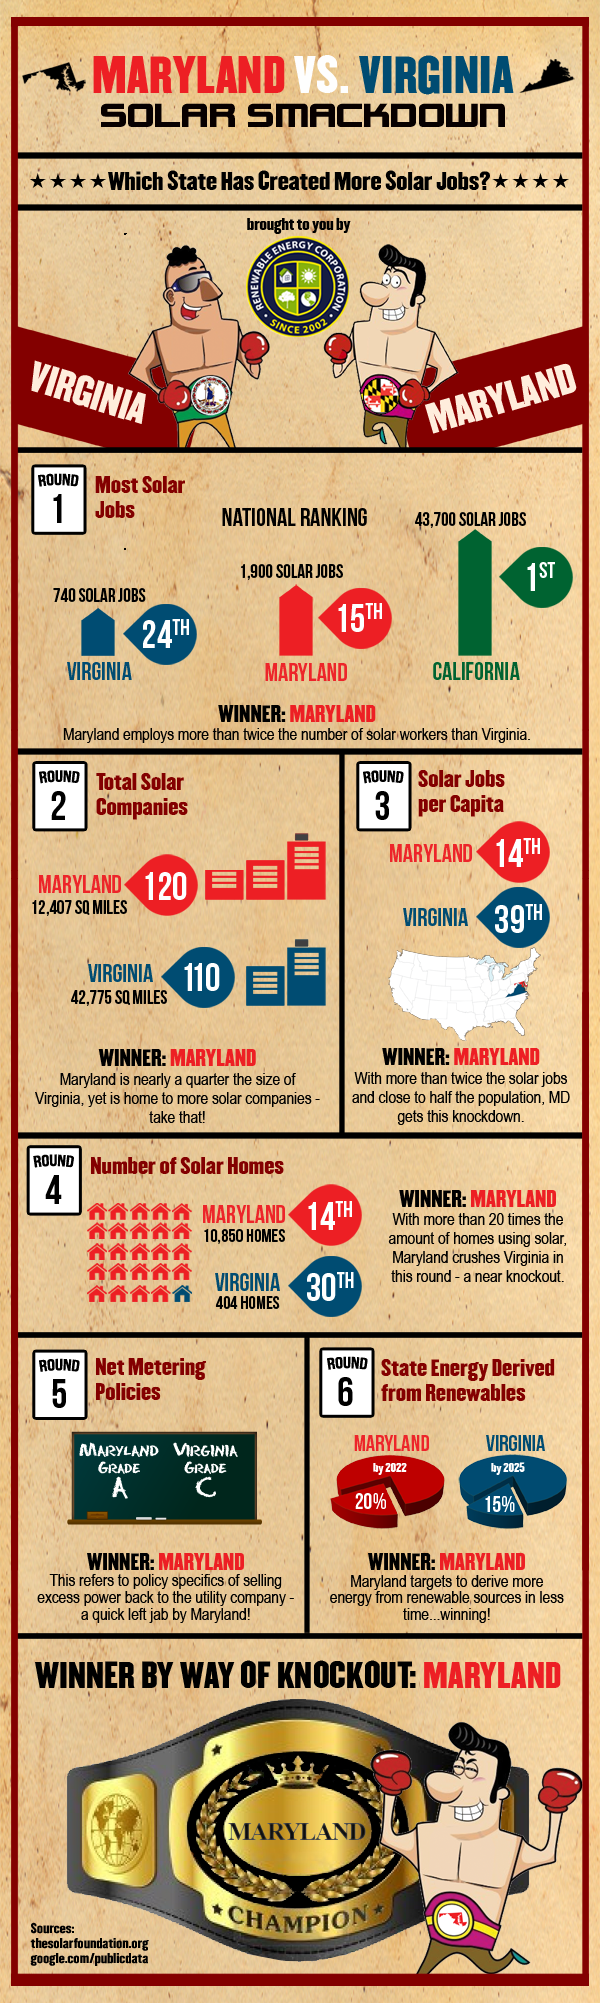 virginia maryland solar infographic